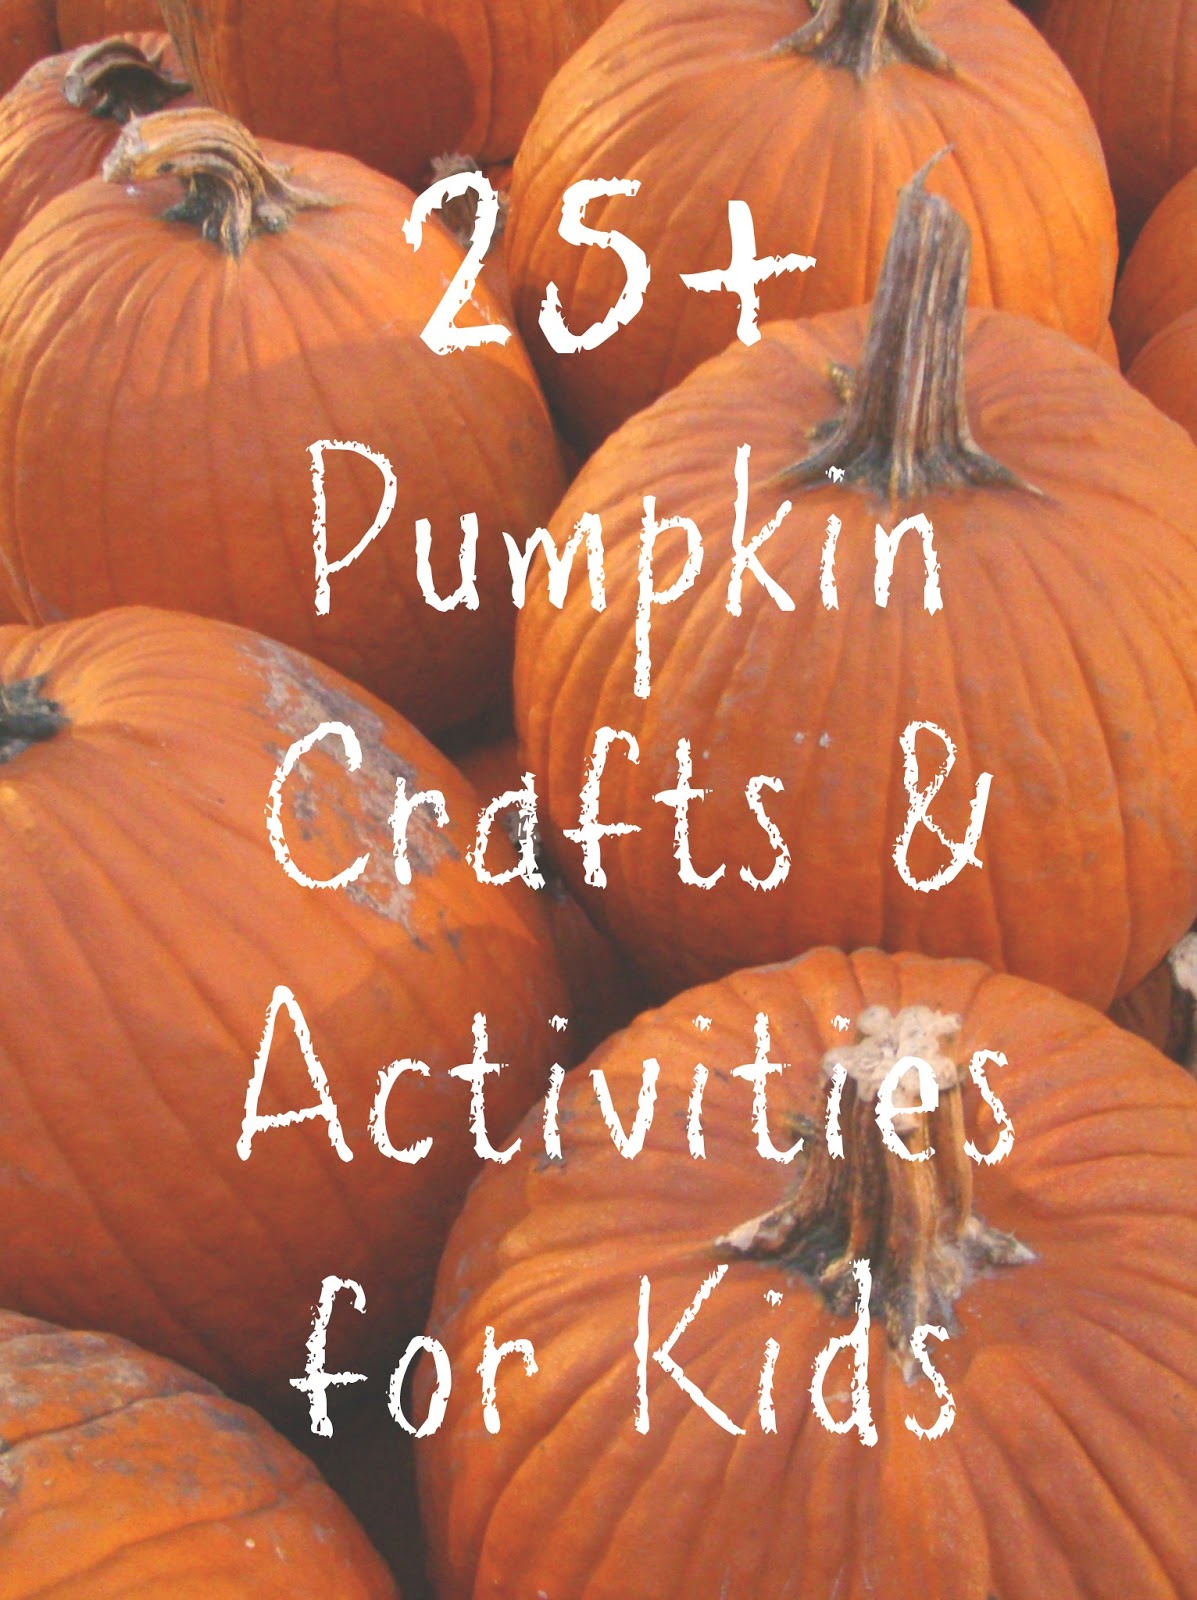 This is an image of Persnickety Pumpkin Crafts for Toddlers